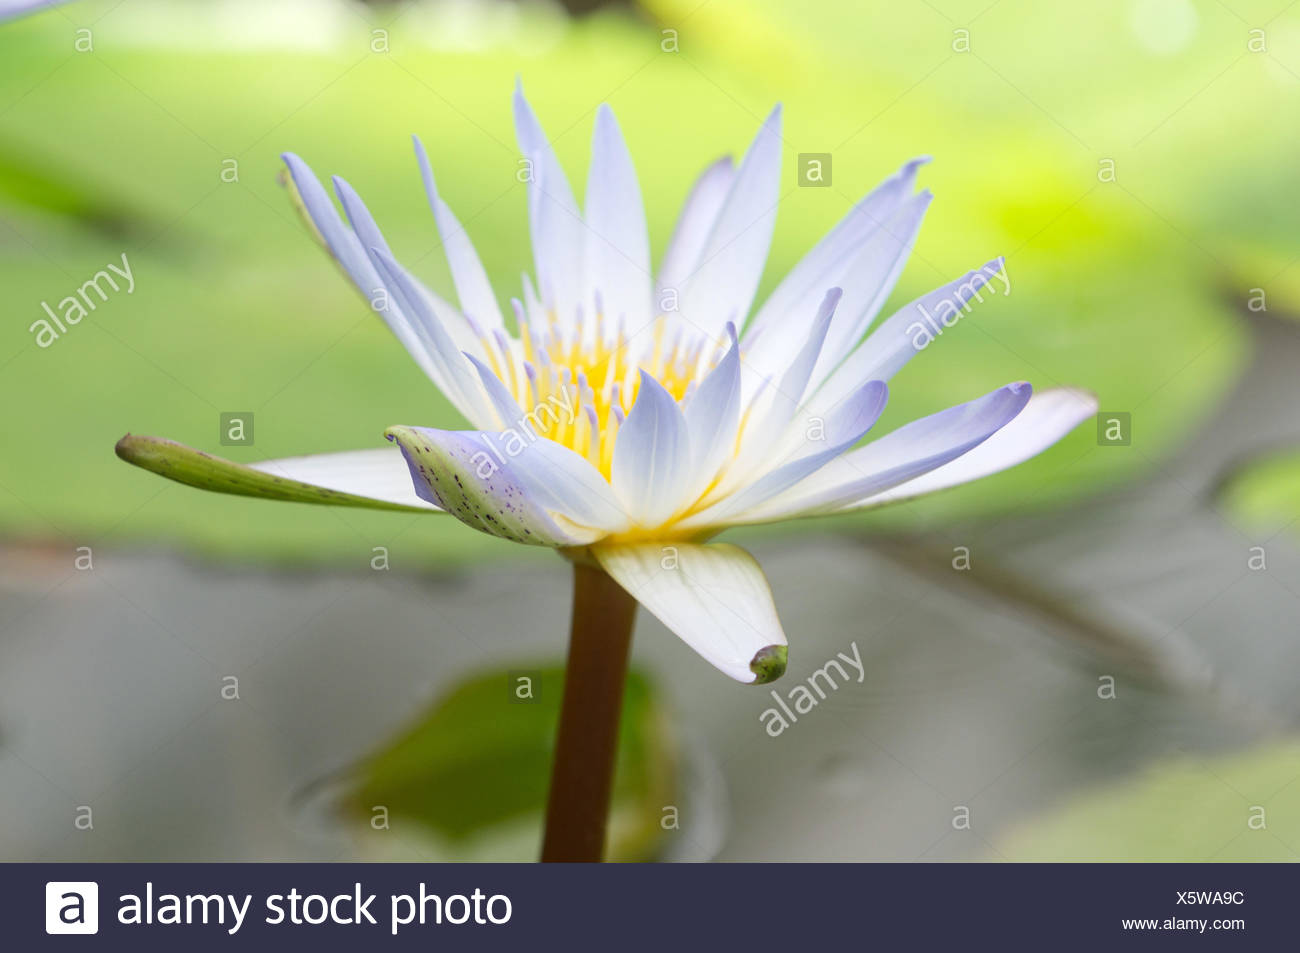 White Egyptian Lotus Blossom Close Up Stock Photo 278996072 Alamy